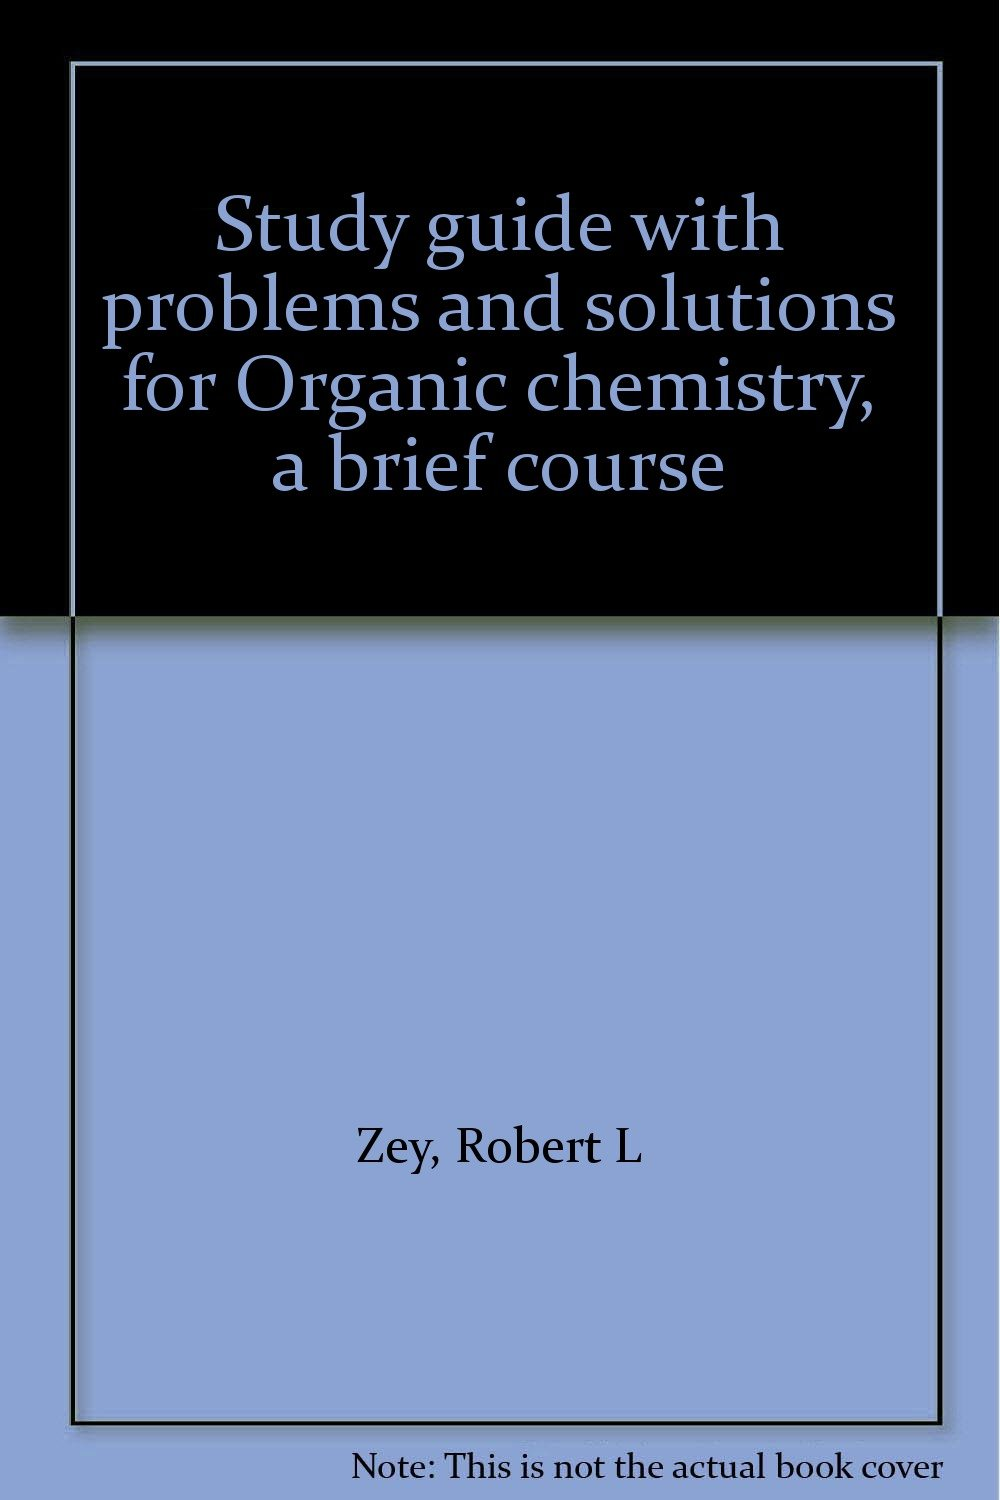 Study guide with problems and solutions for Organic chemistry, a brief  course: Robert L Zey: 9780669006407: Amazon.com: Books